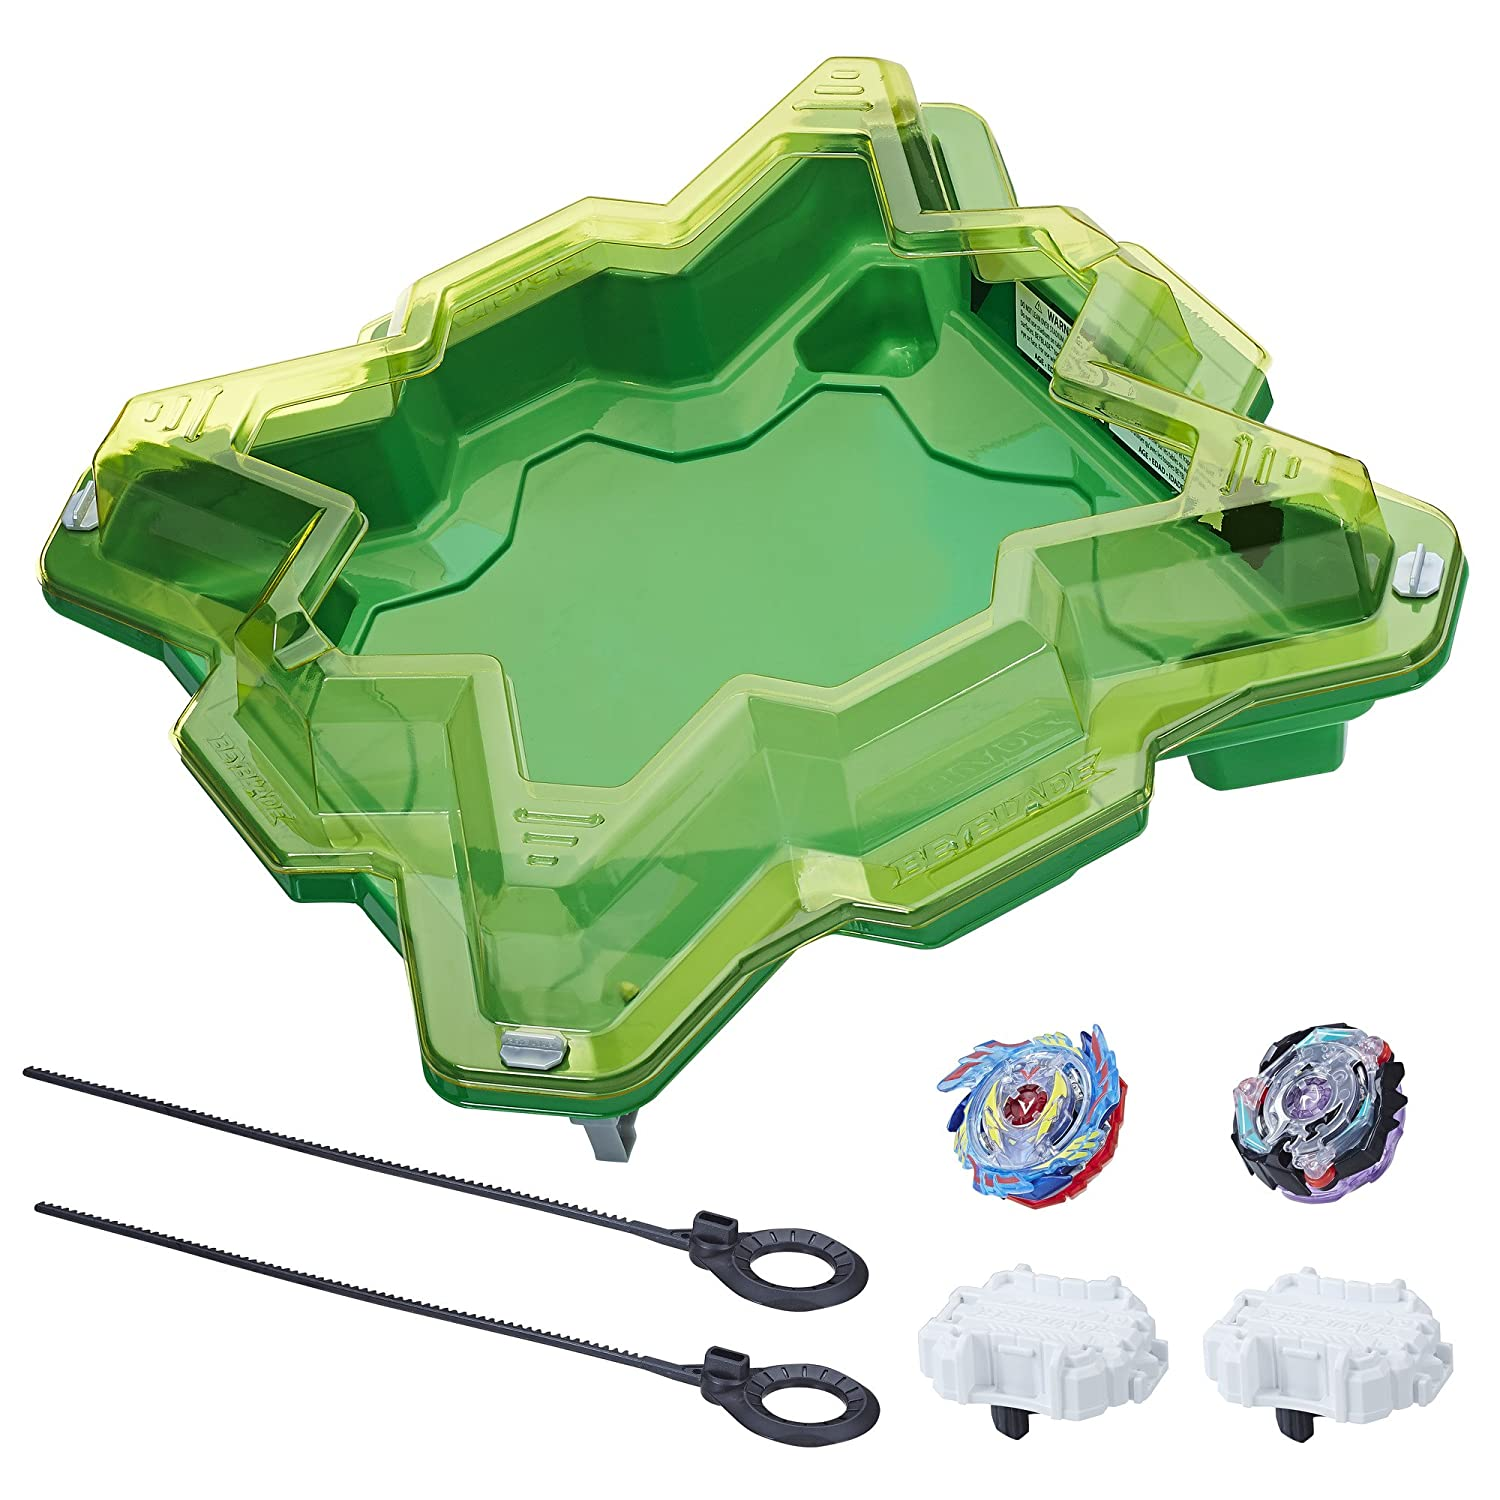 Top 10 Best Beyblade Toys in the World 2020 - Buyer's Guide 2